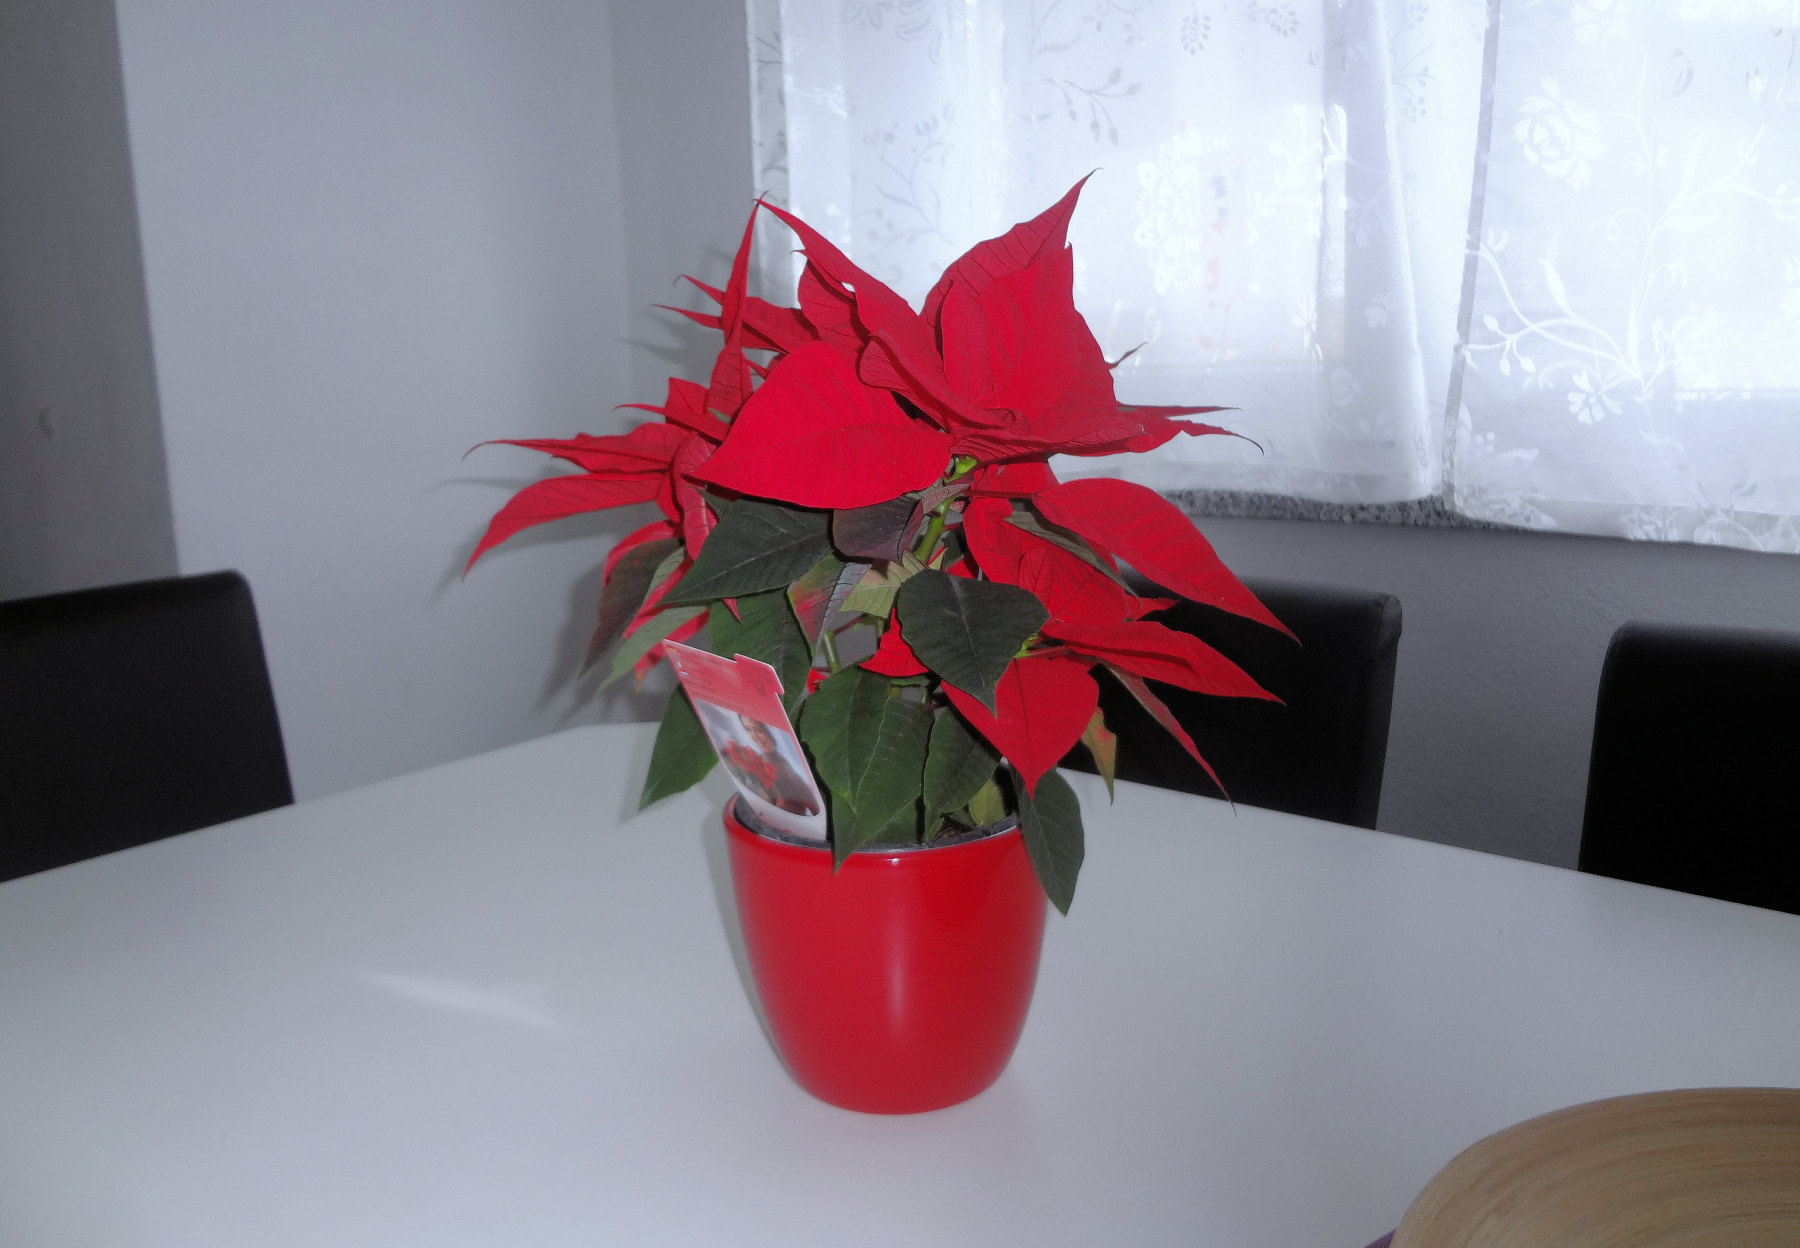 The queen of the Christmas plants, a poinsettia on the dinning table